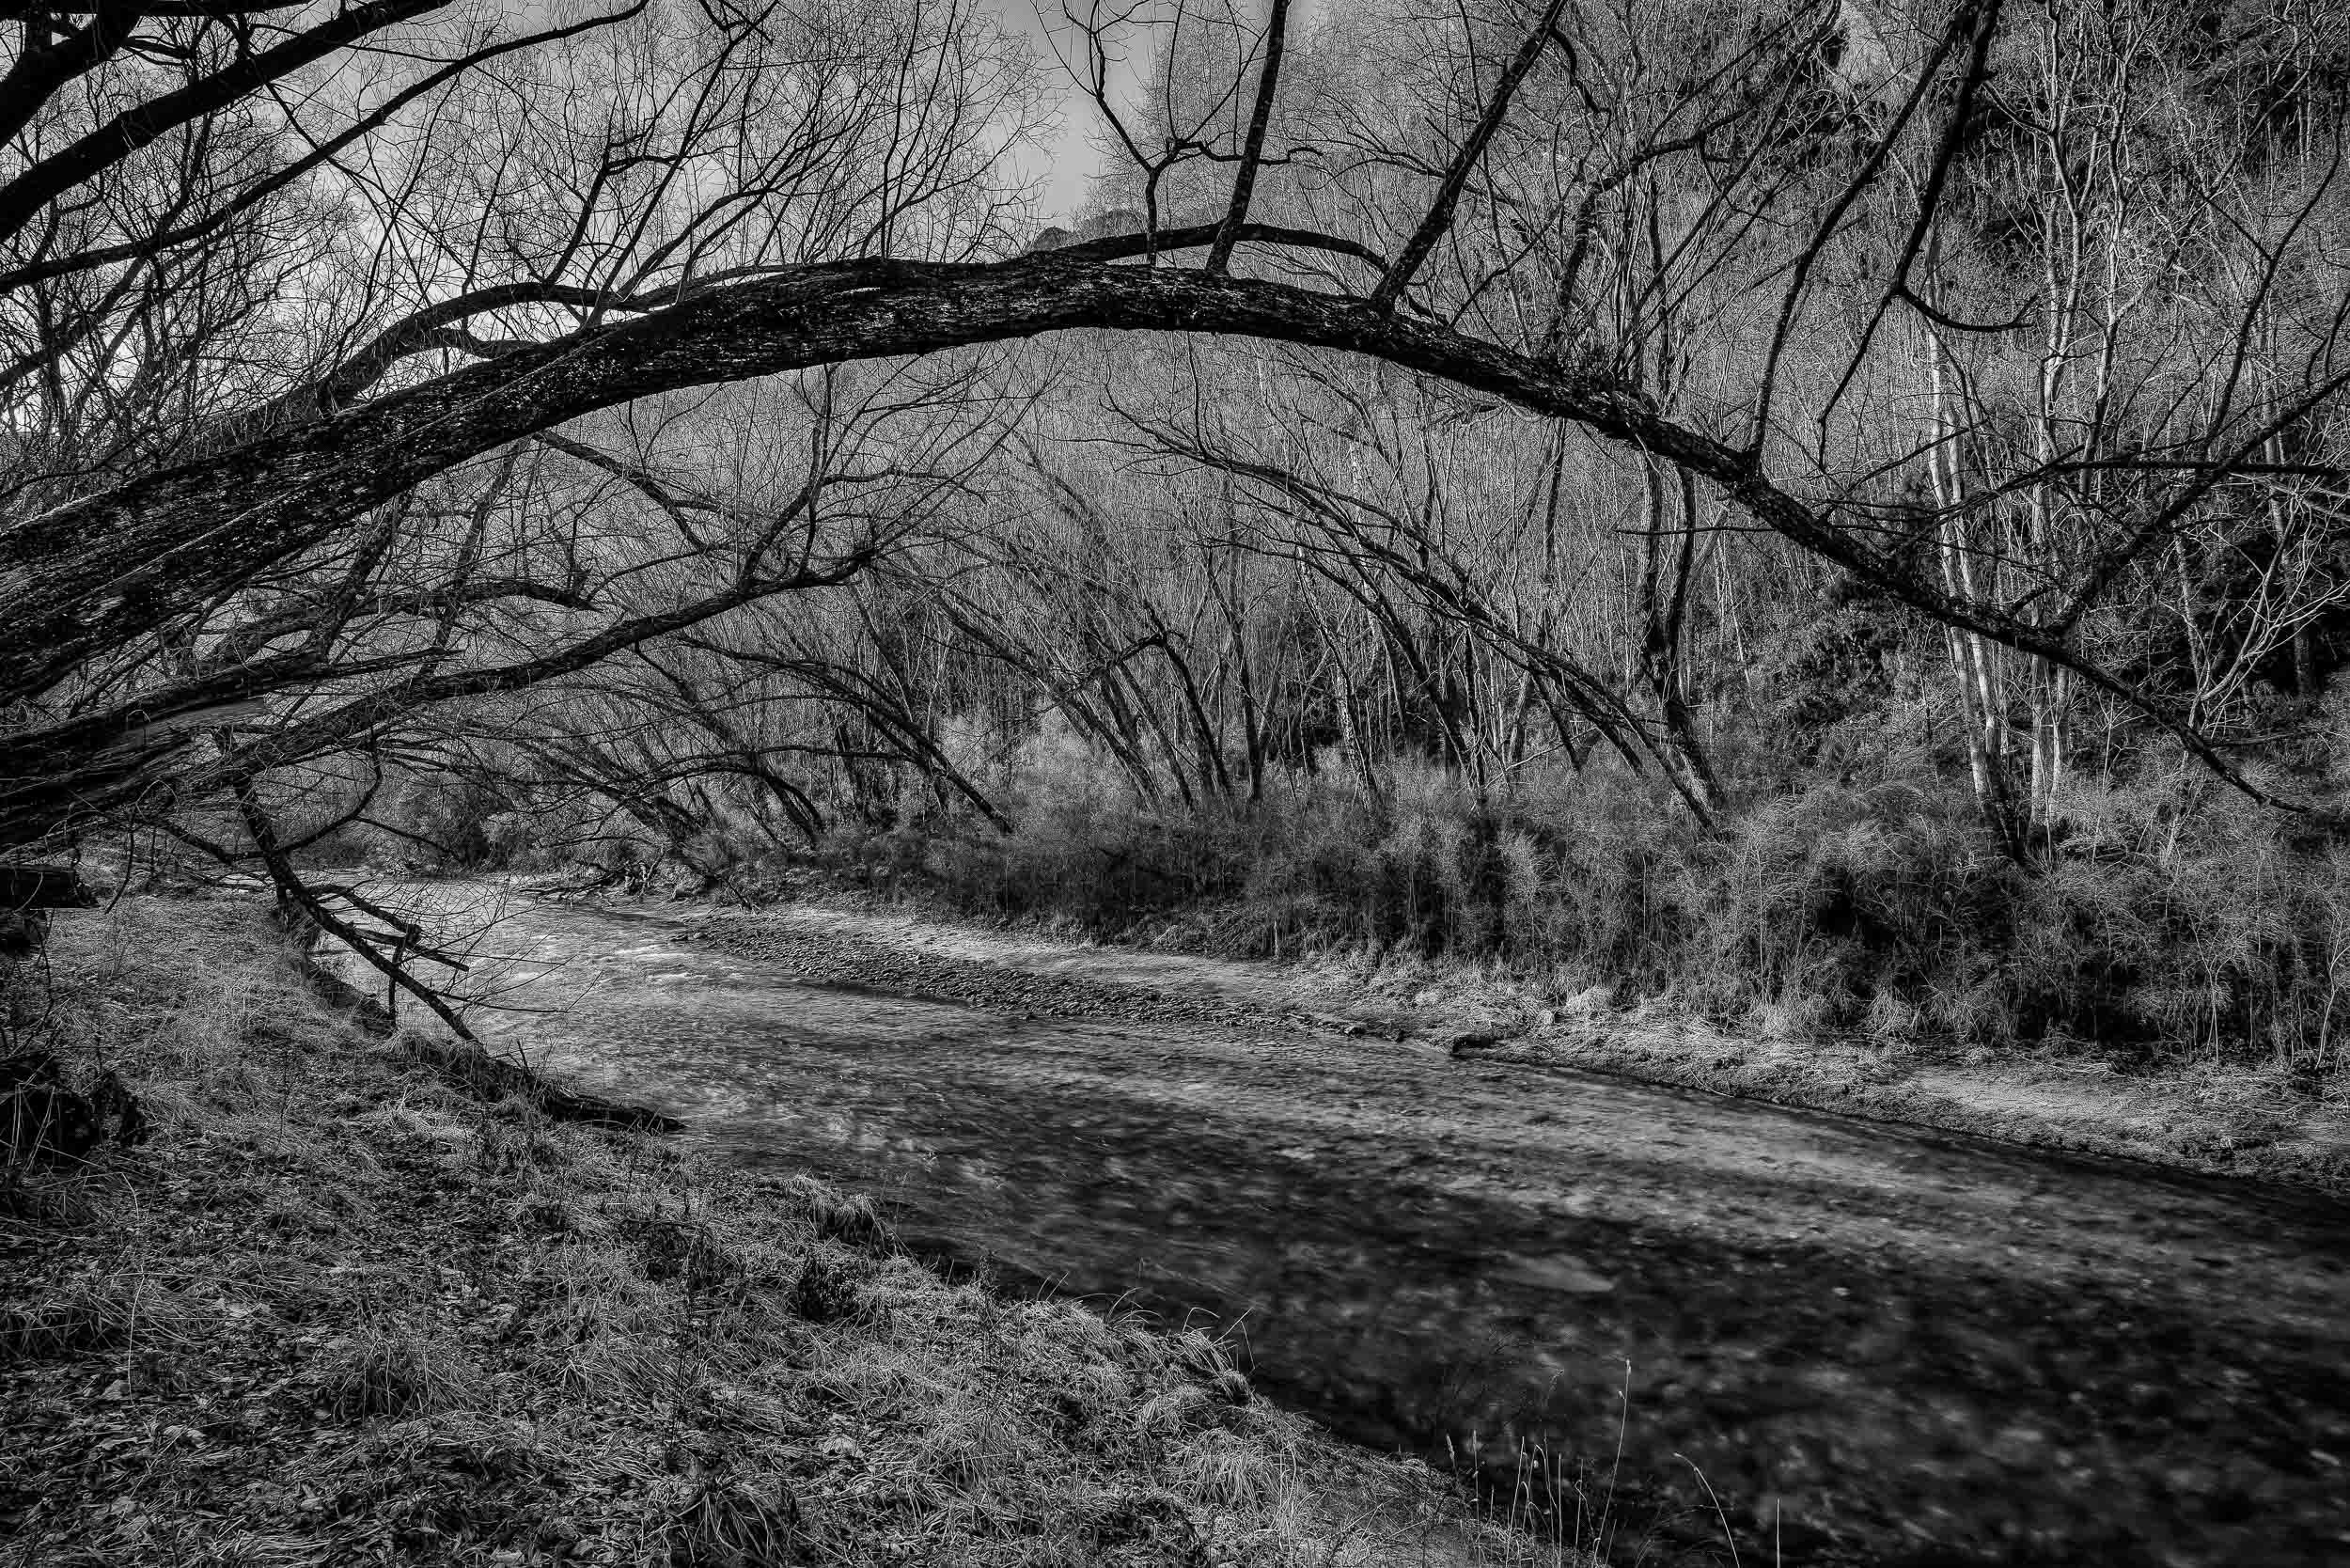 Low lying tree branches frame the  Arrow River  on a winter's day in  Arrowtown, New Zealand .